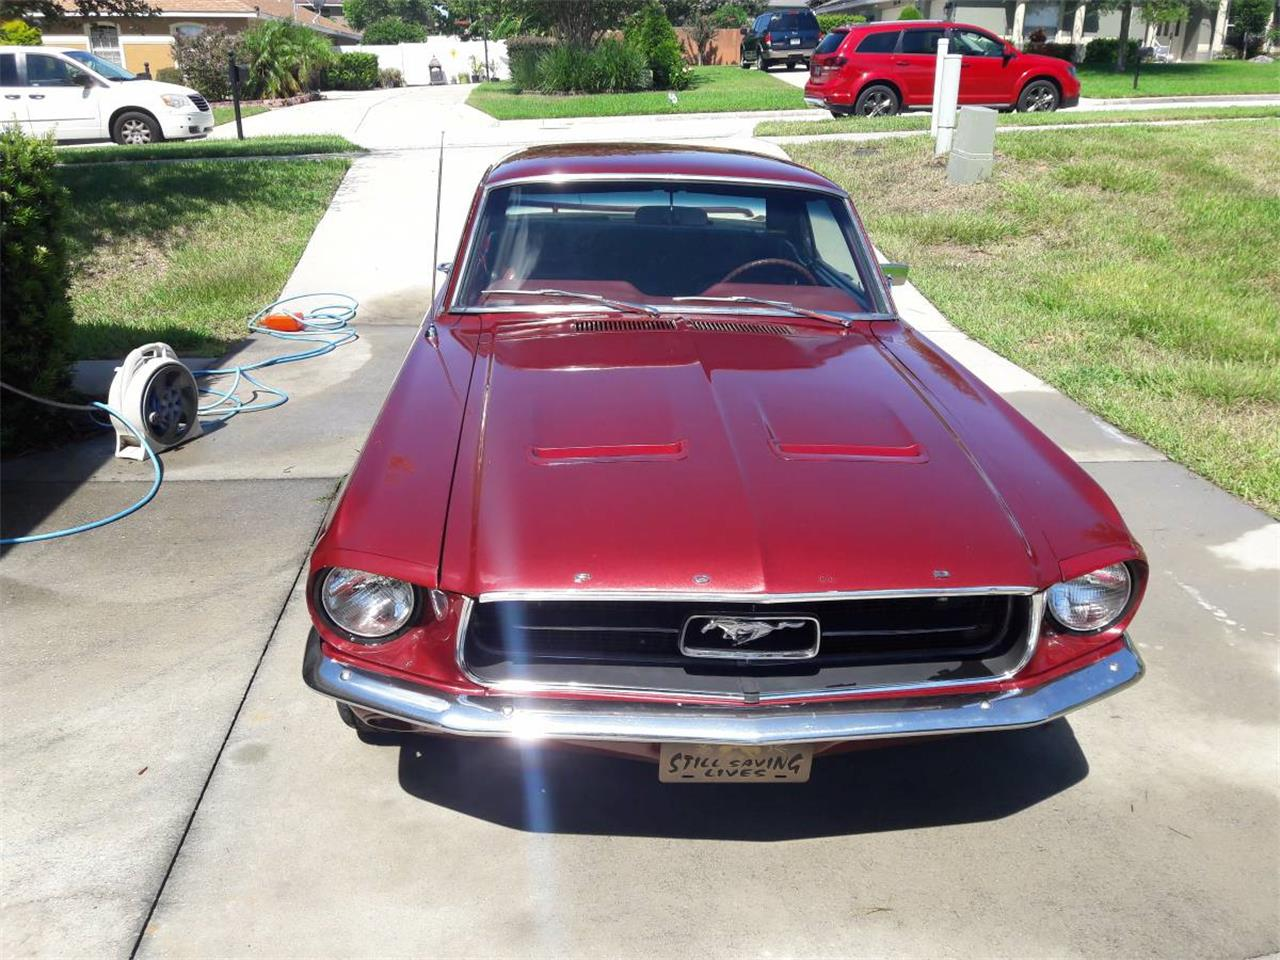 Large Picture of 1967 Ford Mustang located in Clermont Florida - $11,500.00 - M8AB